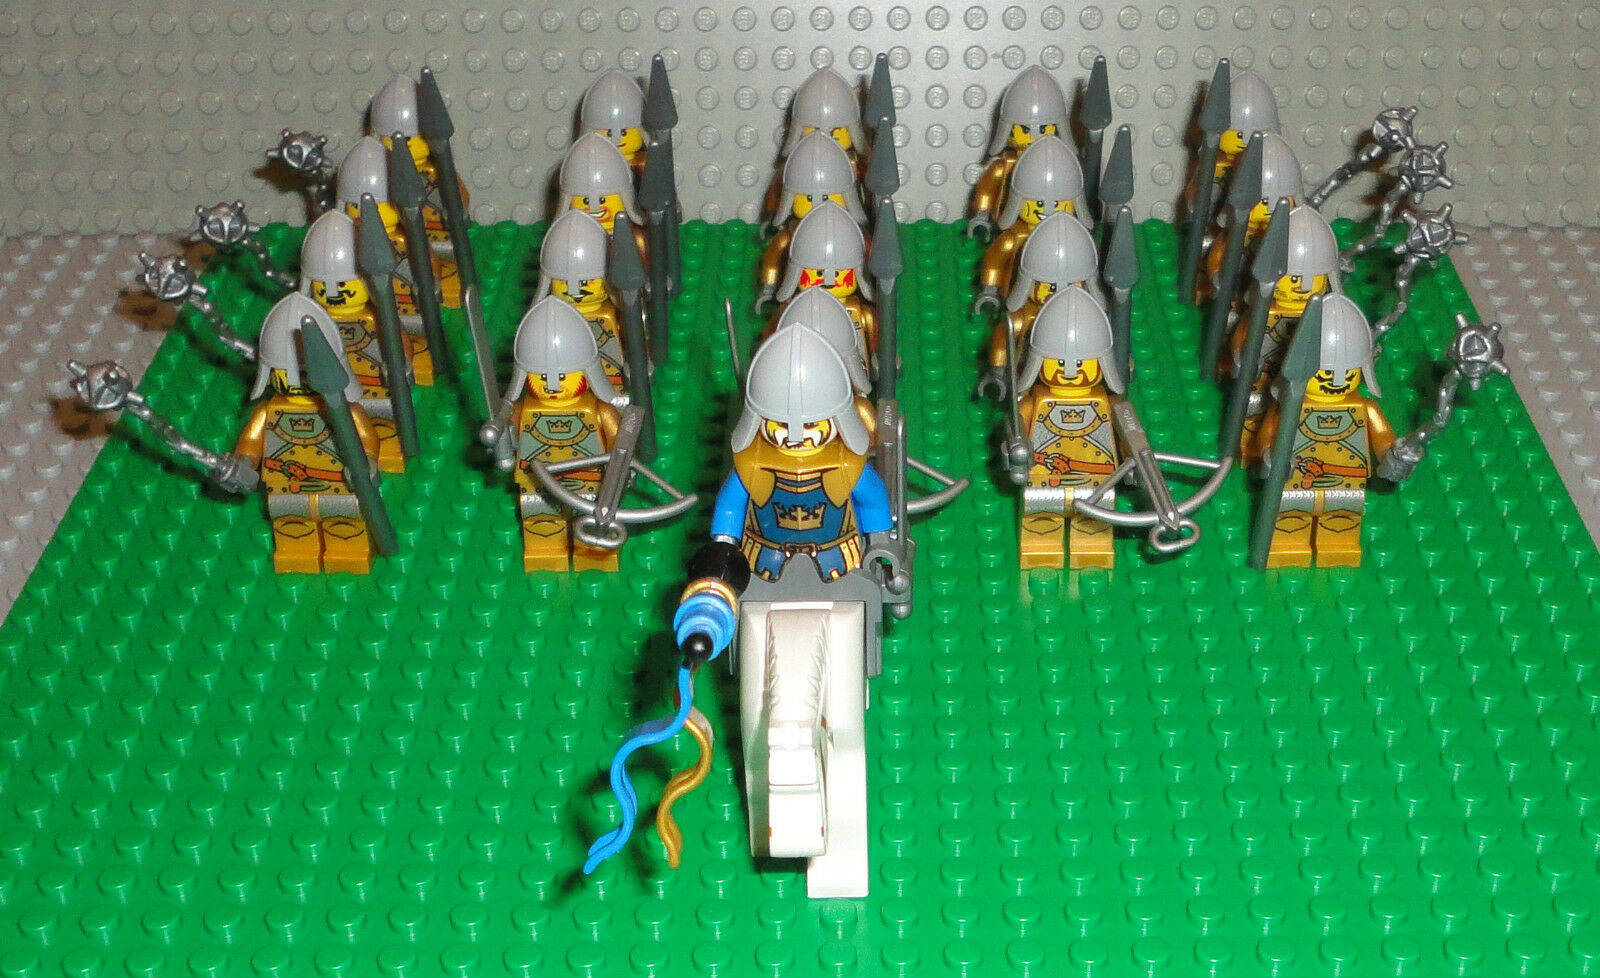 LEGO Minifigures Lot 21 Gold Crown Knights Army Castle Guys Lego Minifigs People